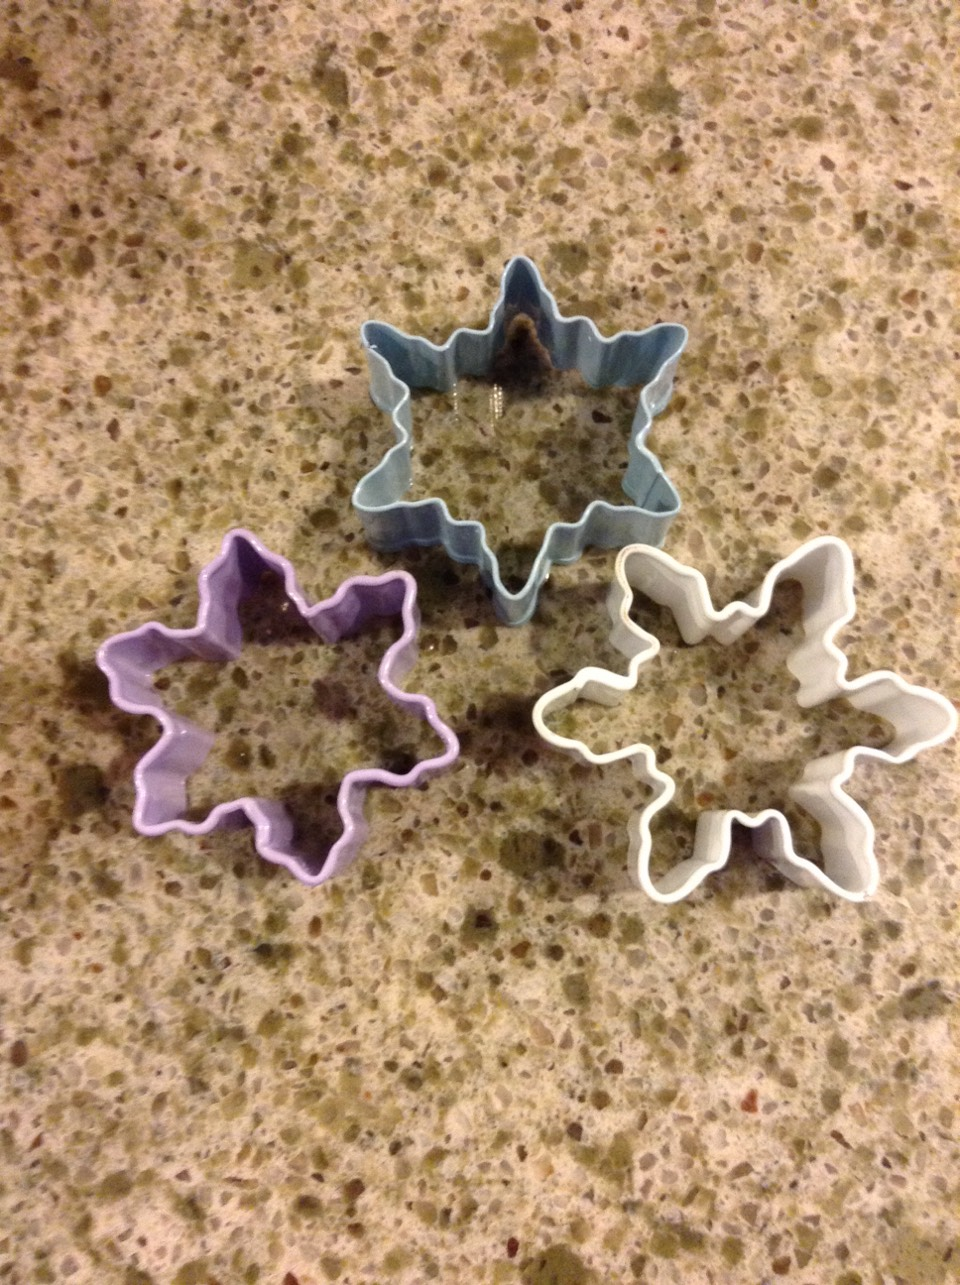 These are the cookie cutters I used.